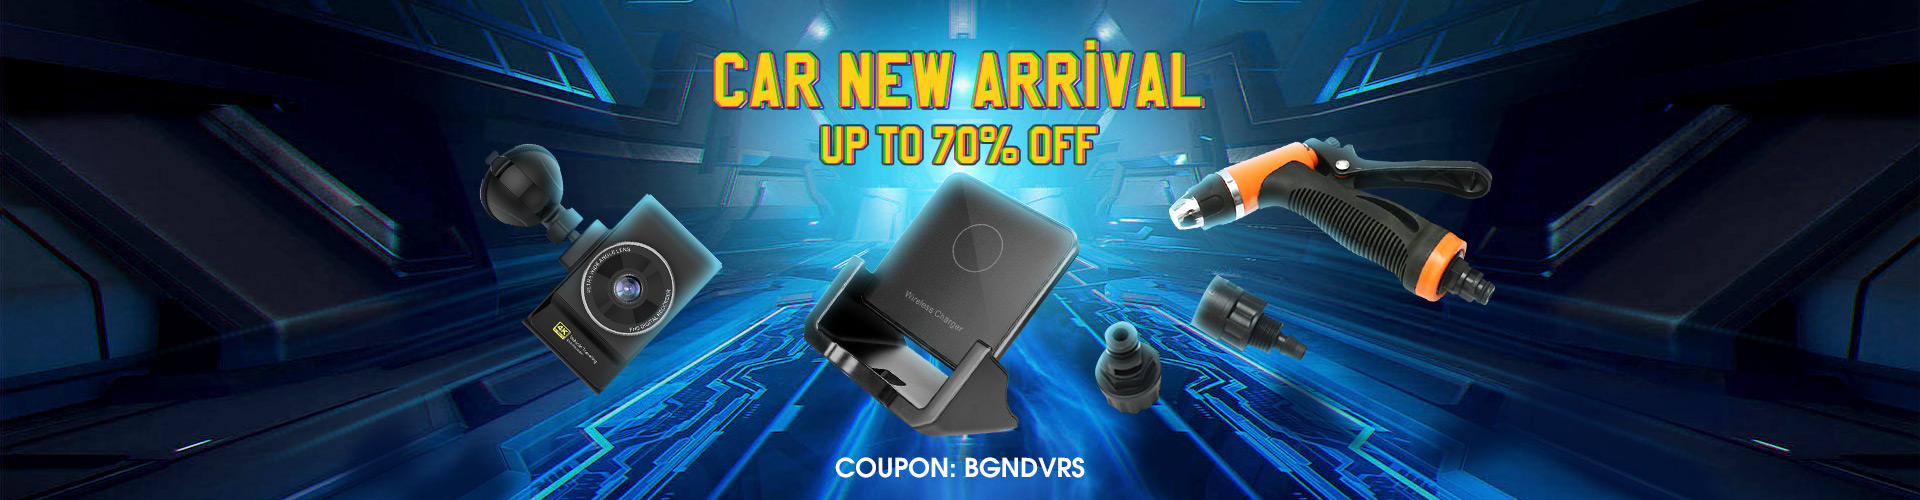 15% OFF for Car New Arrival